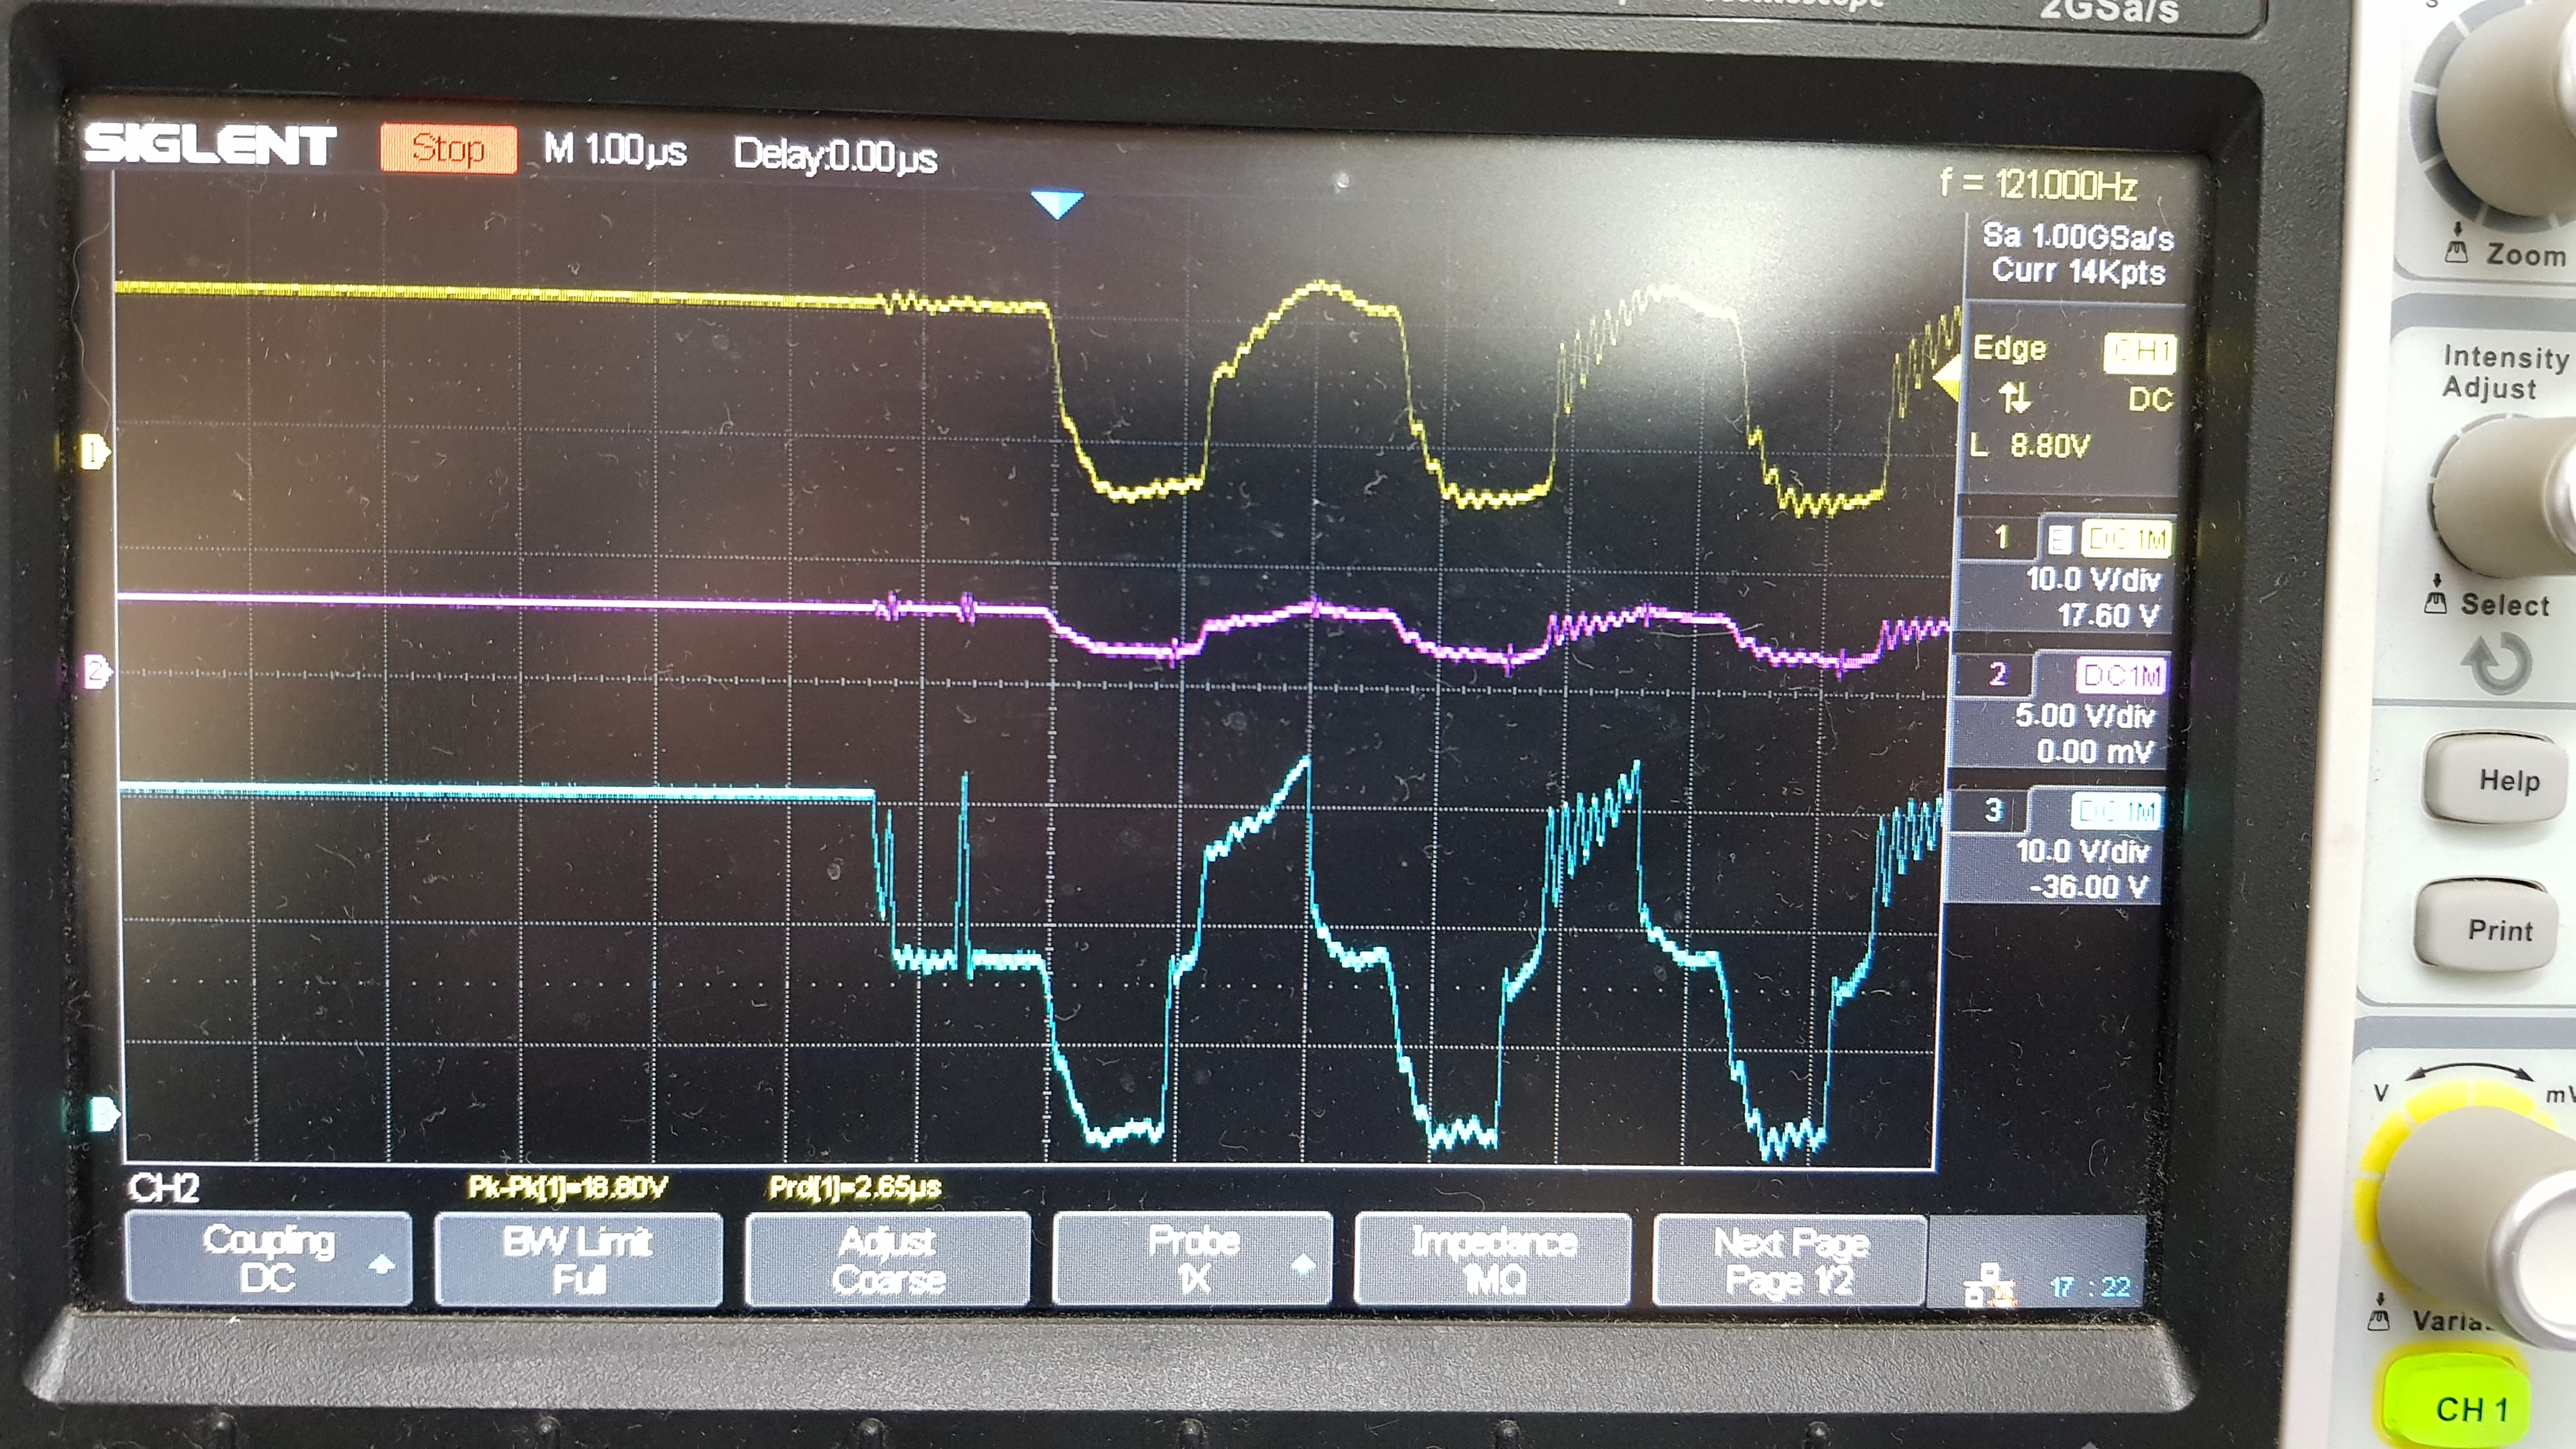 Lm5104 To Work As A Switch Not With Pwm Power Management Forum Thread Some Help Circuit I39m Working Onhopefully Attached Pictures Of What Happend After Few Cycles That Oscilation It Stopped And The Hs Went Something Arround 5 Volts